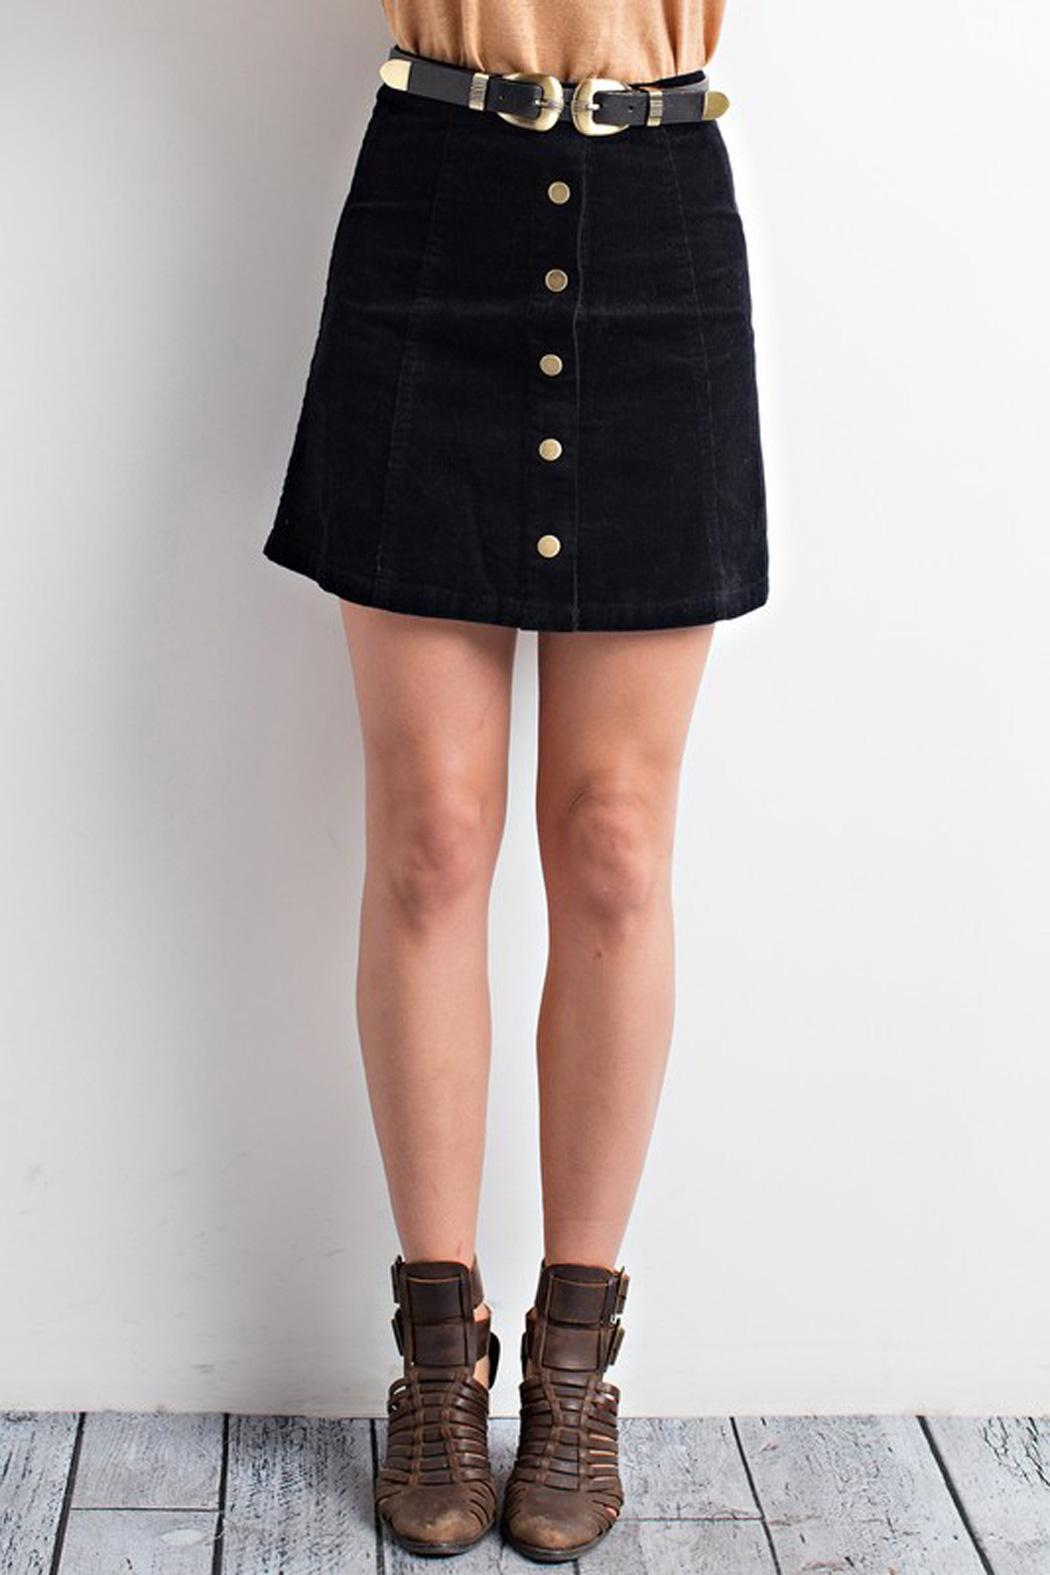 Wishlist Button Up Corduroy Skirt From New Jersey By Making Waves Shoptiques